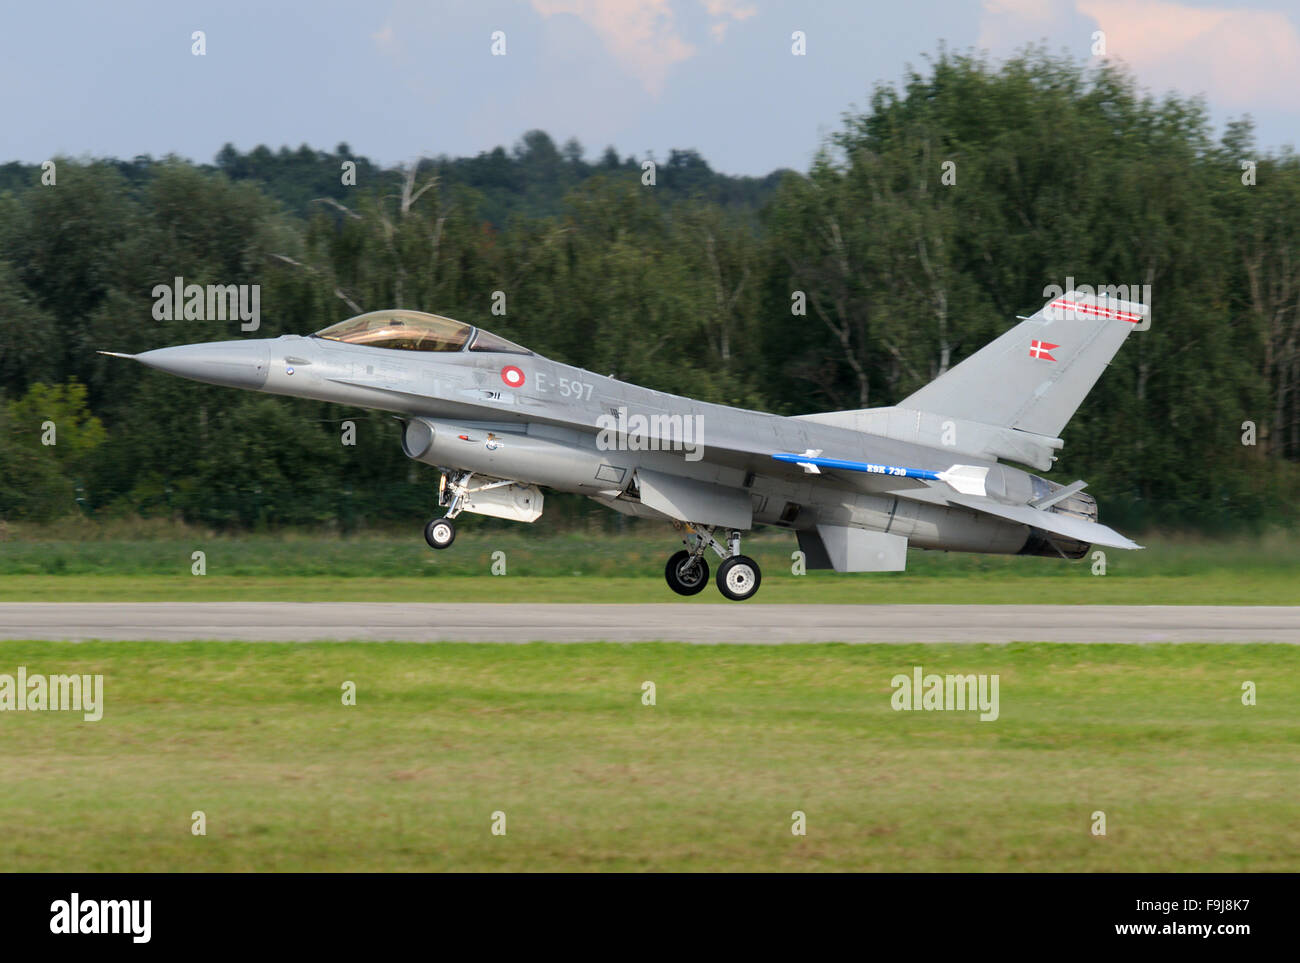 General Dynamics F-16A Fighting Falcon of Denmark Air Force landing - Stock Image